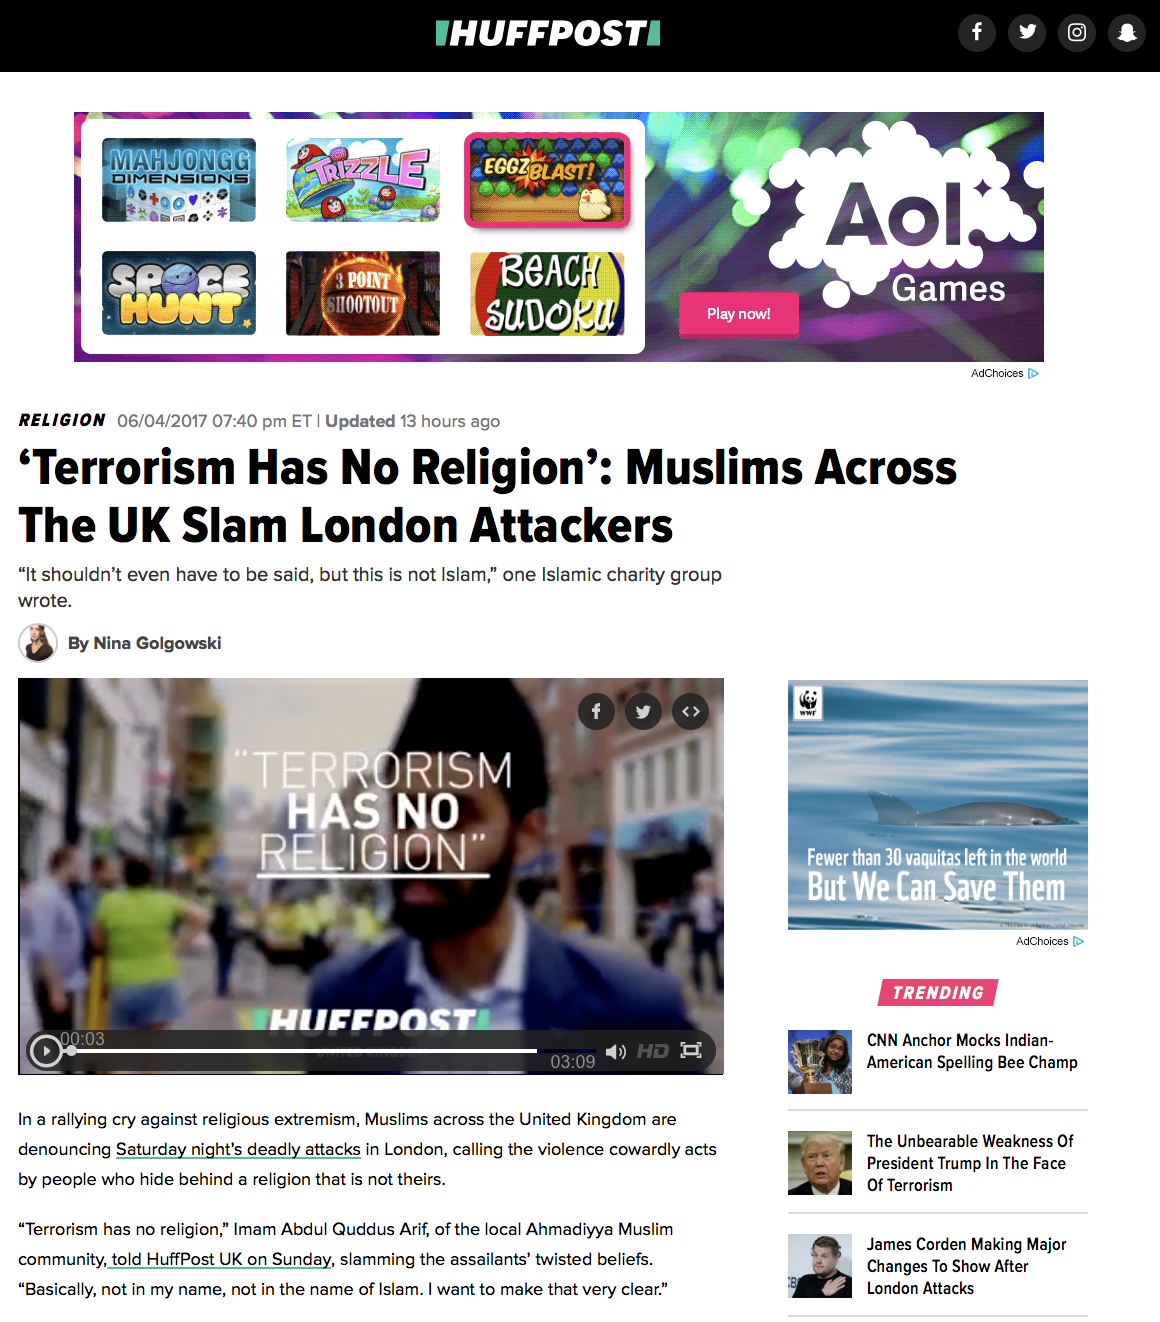 Huff Post: 'Terrorism Has No Religion'